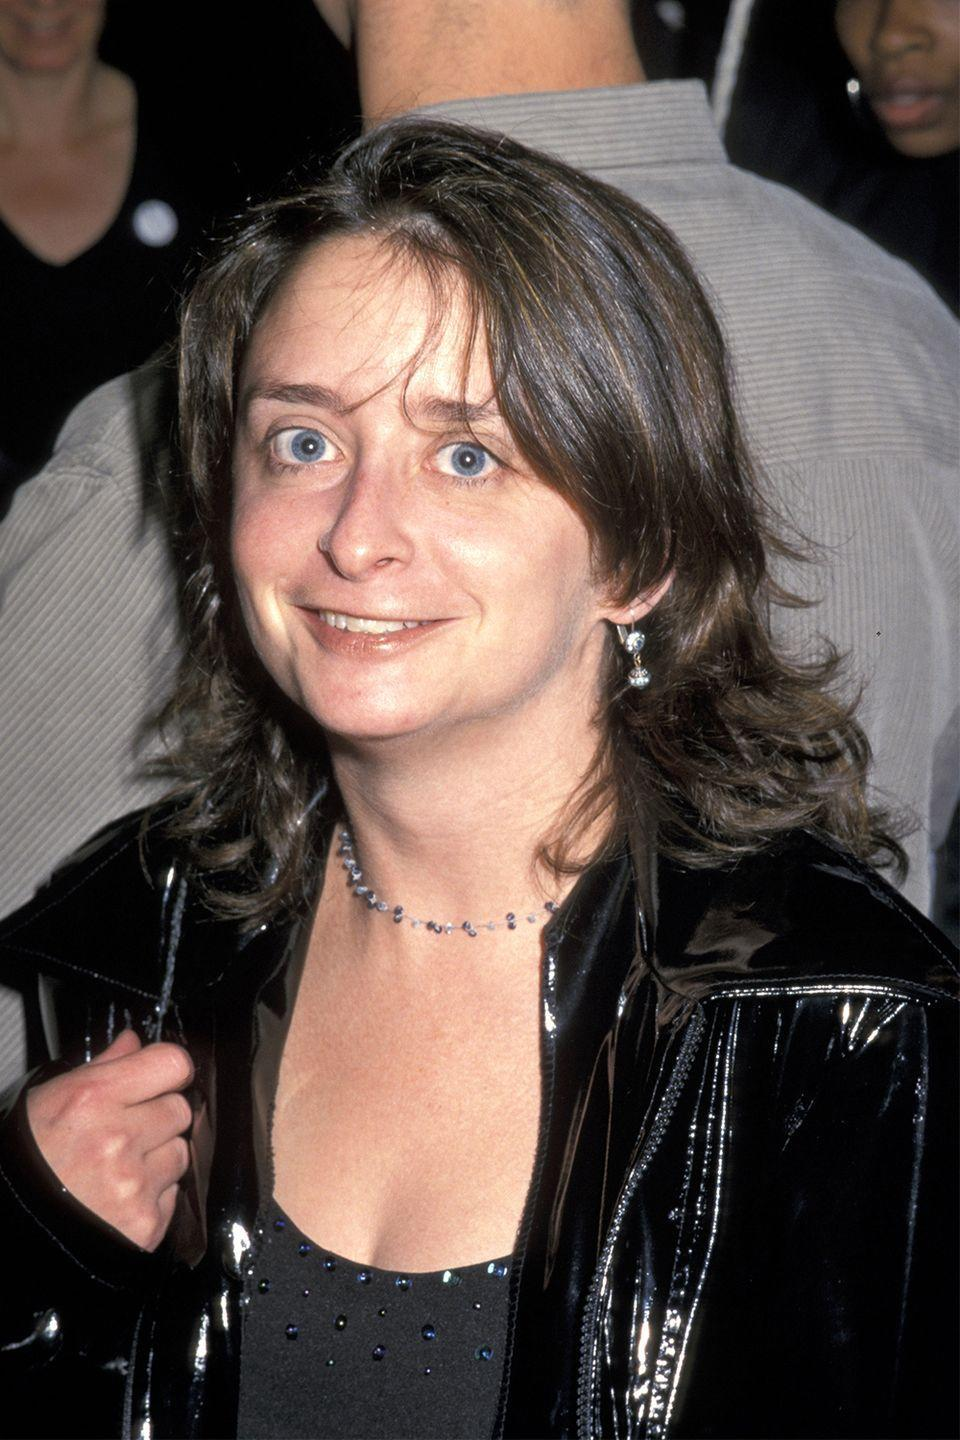 <p>As a choker- and leather jacket-wearing badass in 2000.</p>